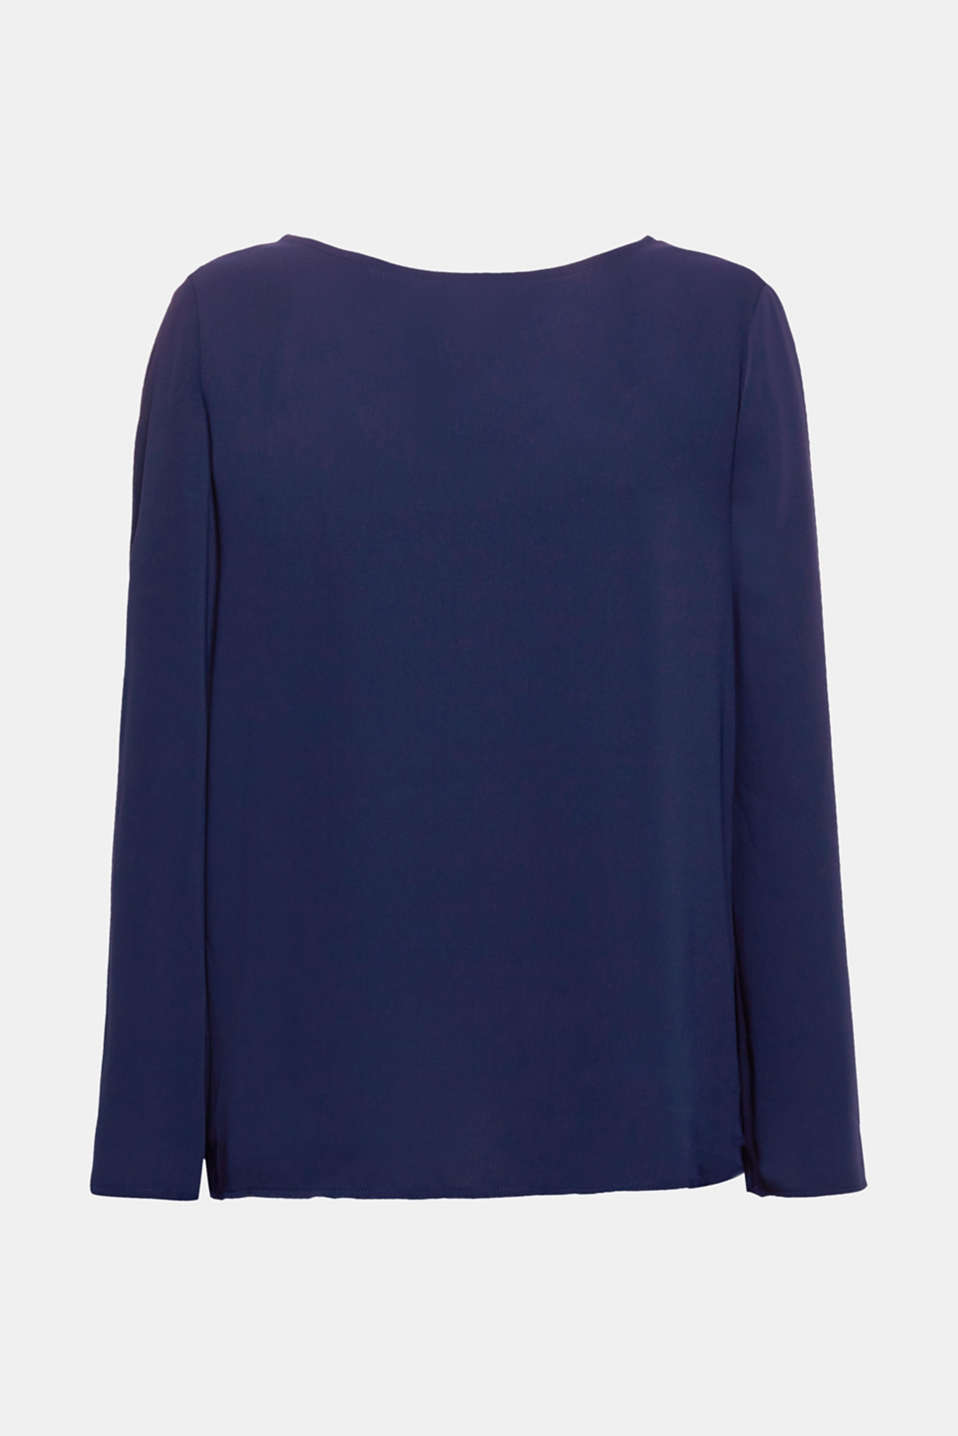 The tied bows on the back, trumpet sleeves and matte finish gives this flowing blouse its elegant look!